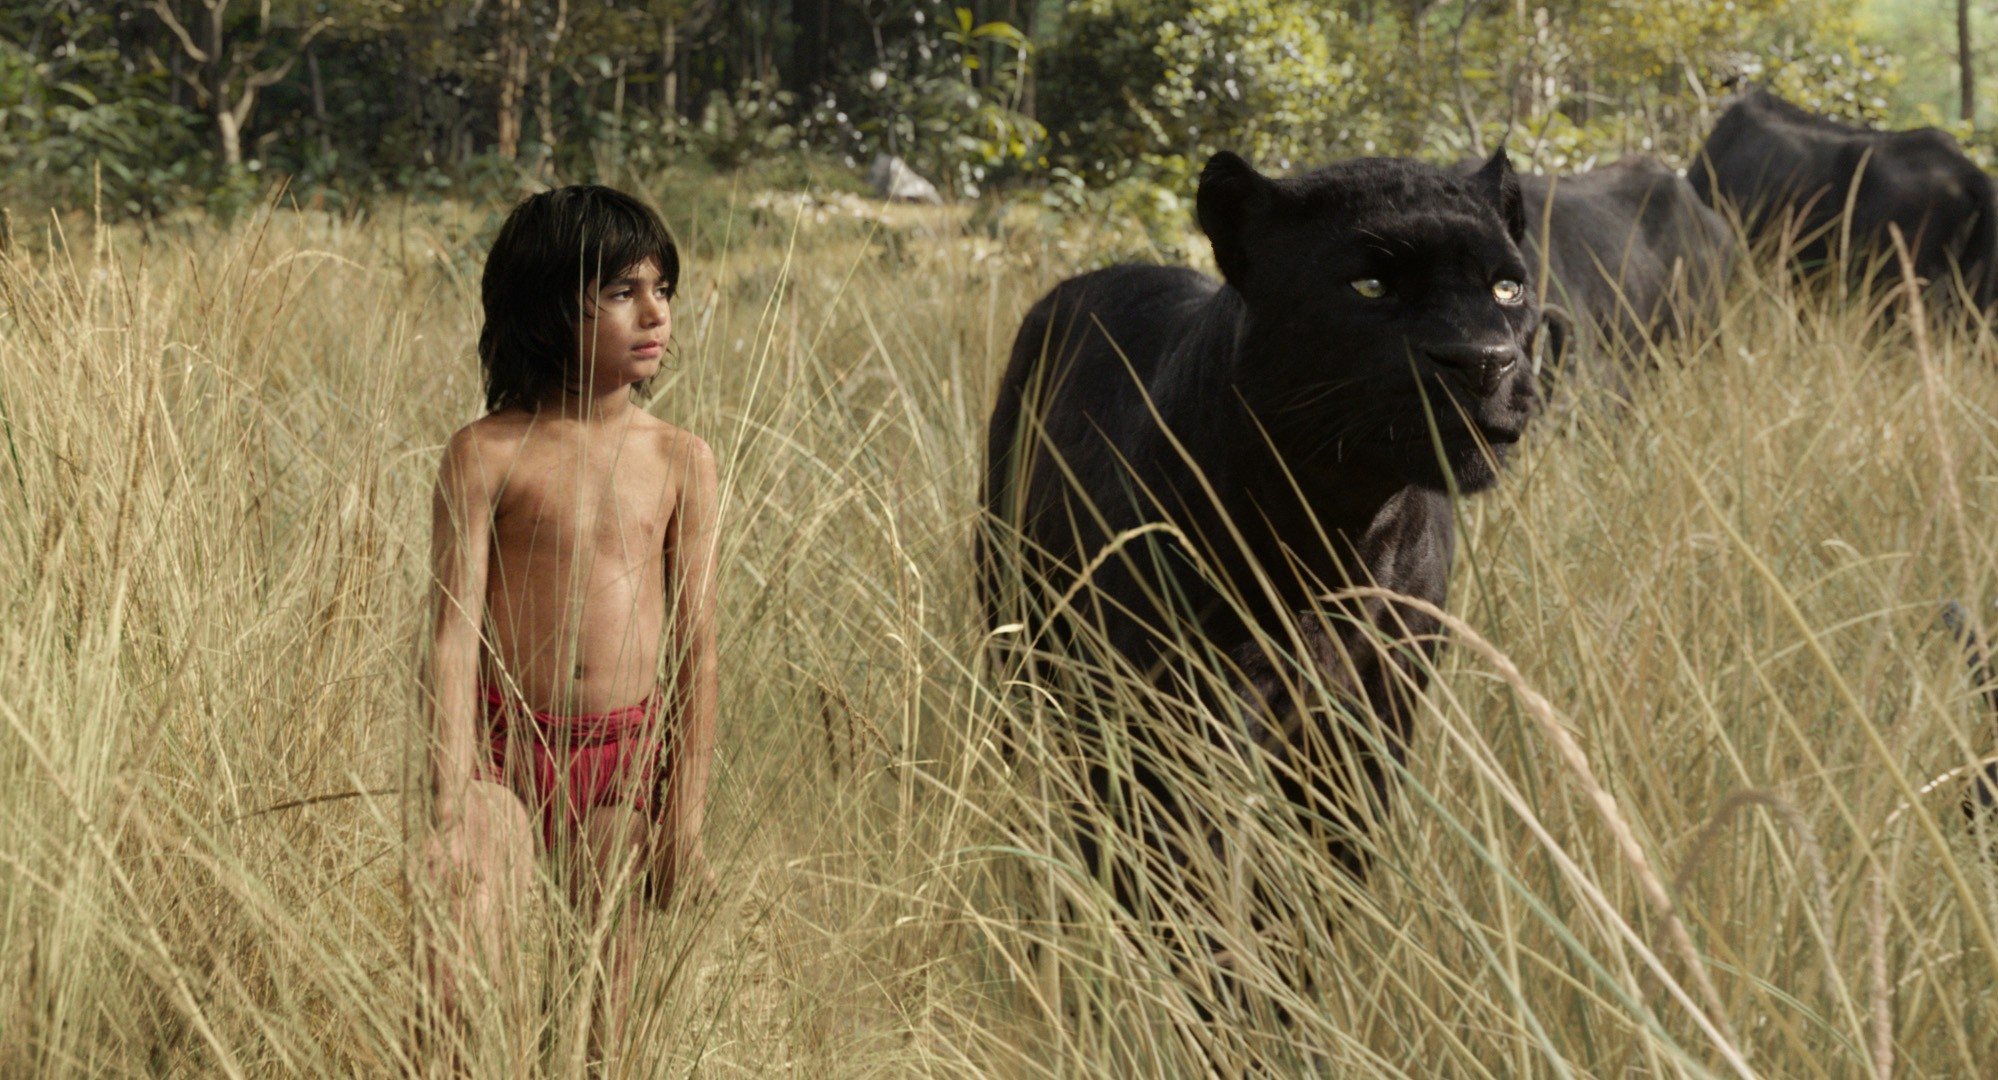 """Mowgli (newcomer Neel Sethi) and Bagheera (voice of Ben Kingsley) embark on a captivating journey in """"The Jungle Book,"""" an all-new live-action epic adventure about Mowgli, a man-cub raised in the jungle by a family of wolves, who is forced to abandon the only home he's ever known. In theaters April 15, 2016.   ©2015 Disney Enterprises, Inc. All Rights Reserved.  Sky, TL"""